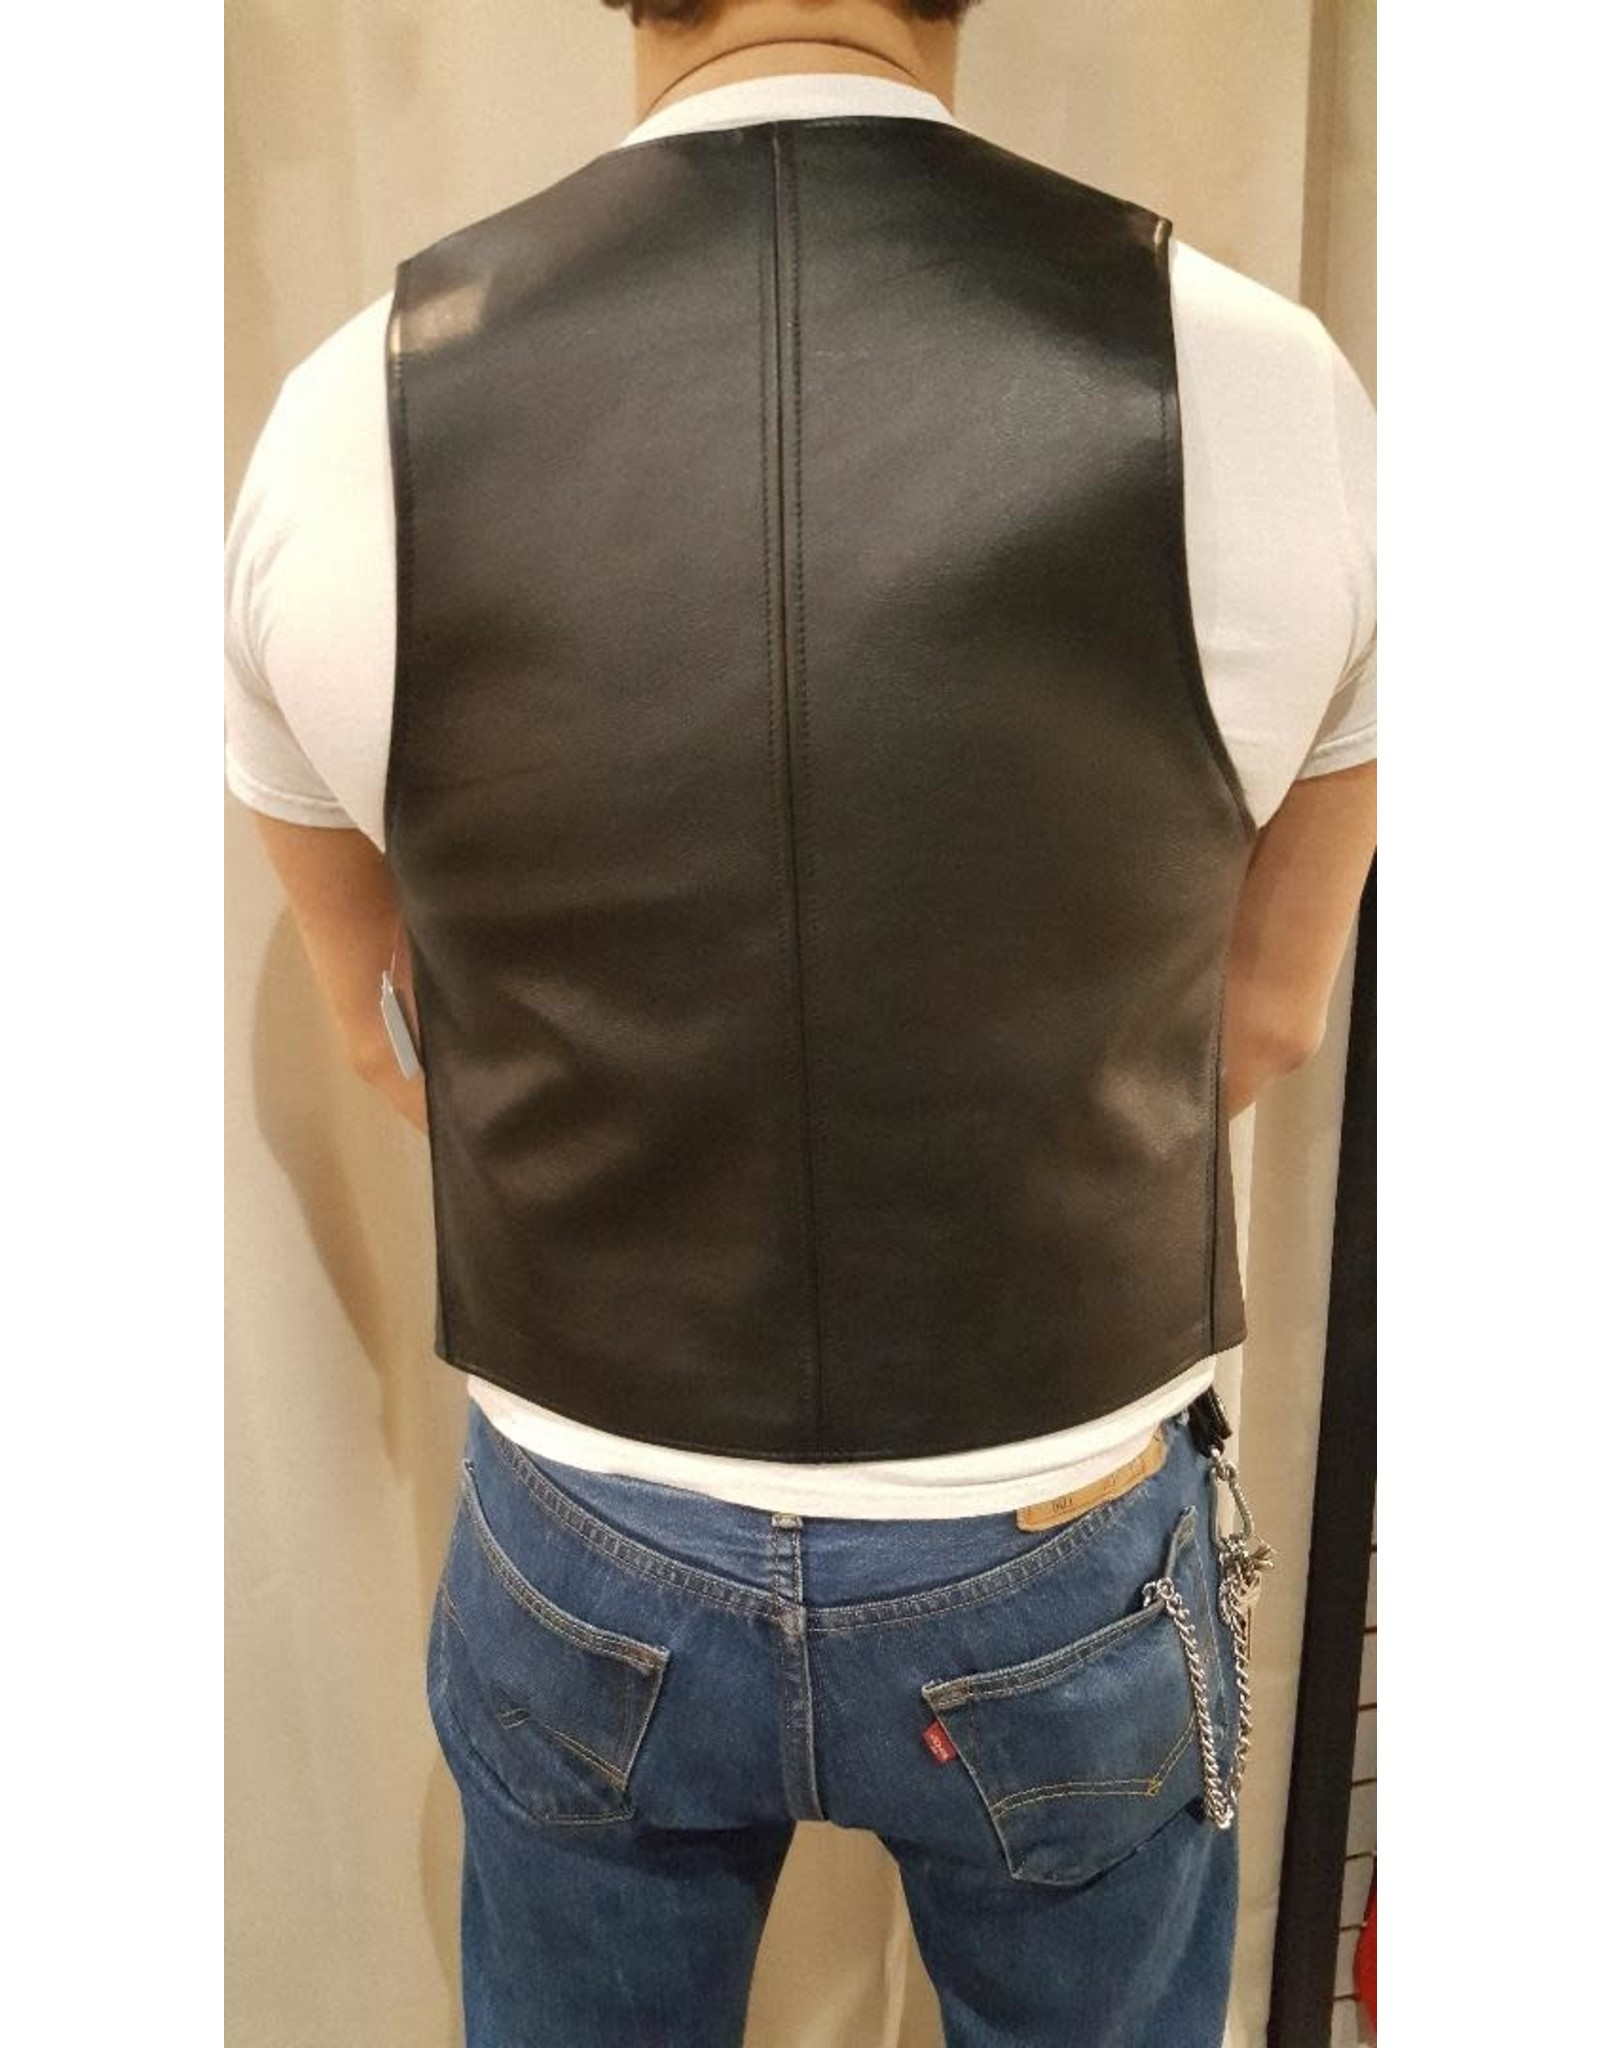 Doghouse Leathers Crafting DH Leathers Bar Vest with Color Stripe